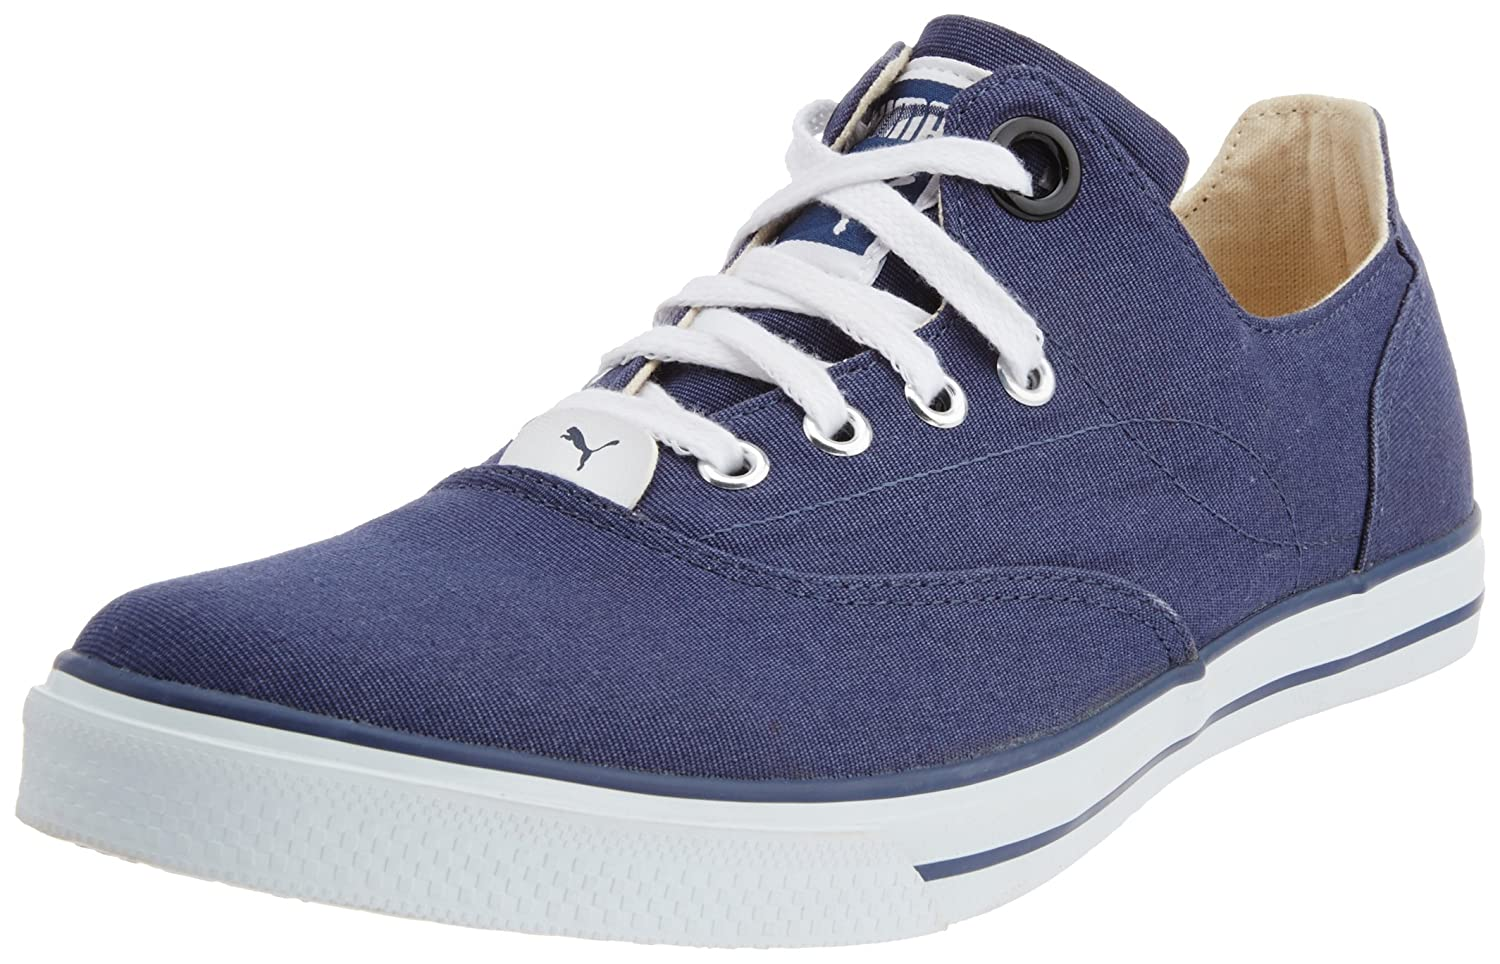 0818458ec67e6a Puma Men s Limnos III Ind. Insignia Blue Canvas Sneakers - 8 UK India (42  EU)  Buy Online at Low Prices in India - Amazon.in